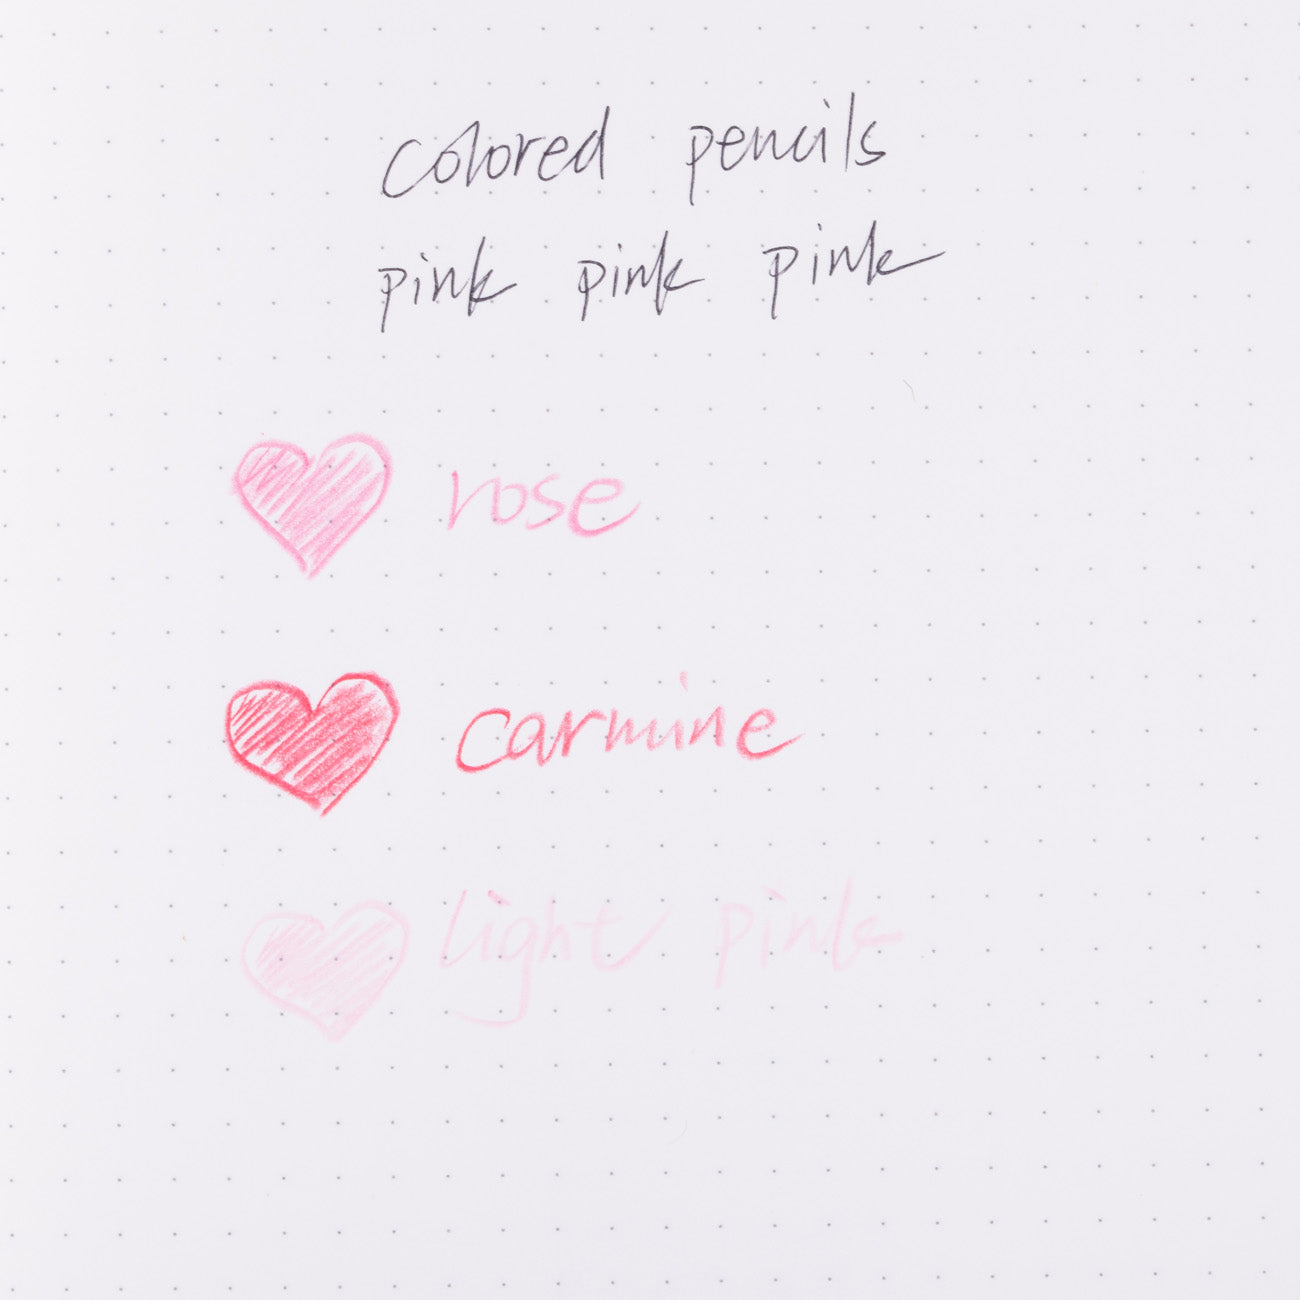 Kutsuwa Culicule Colored Pencils Twist Type - Pink Pink Pink - 3 Color Set